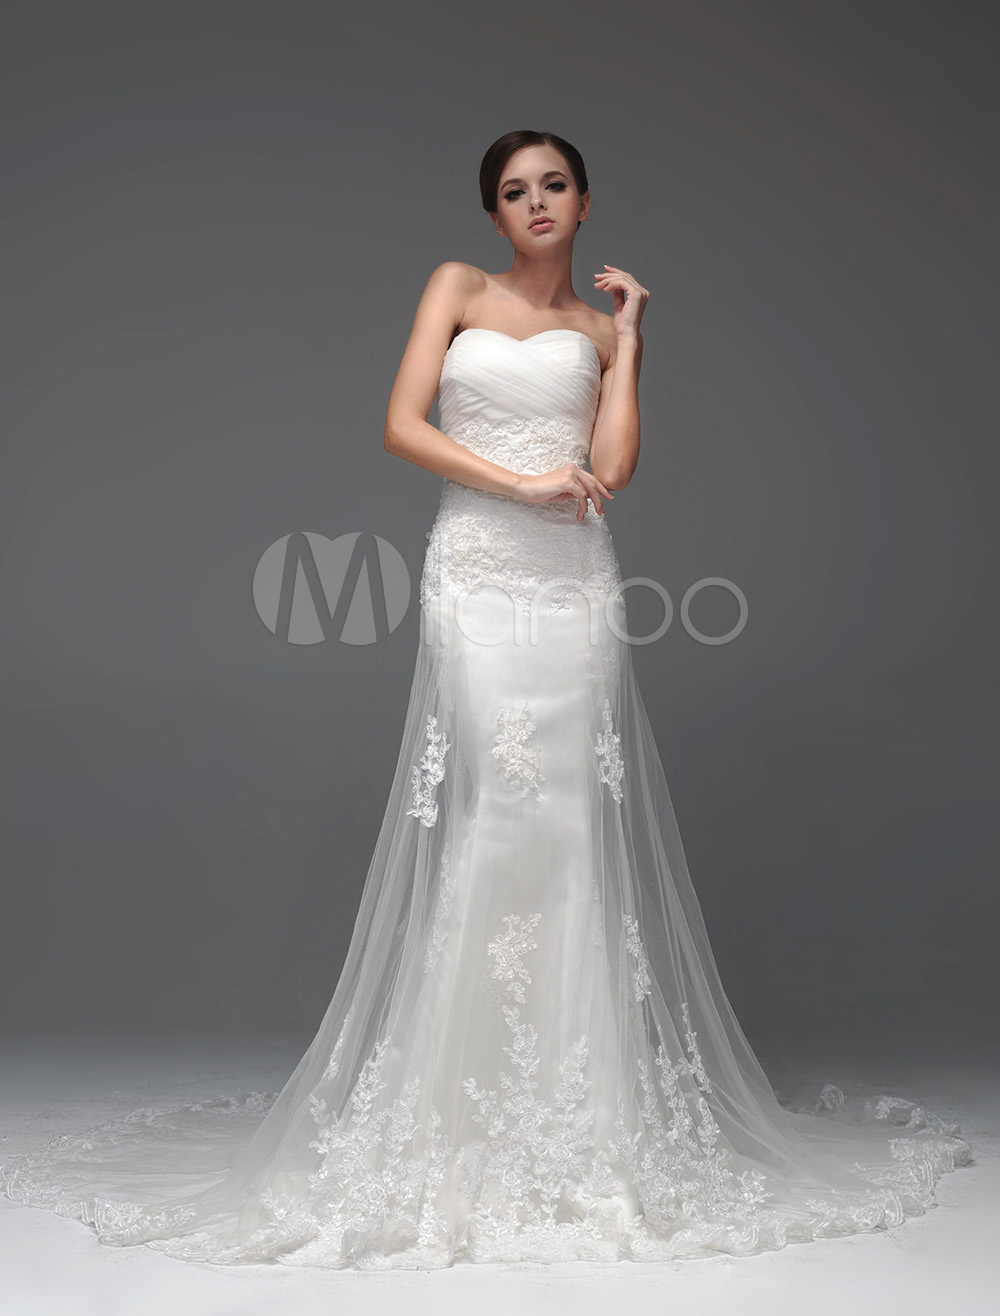 Wedding Dresses Strapless Lace Applique Bridal Dress Ivory Beading Sweetheart Neckline Chapel Train Wedding Gown